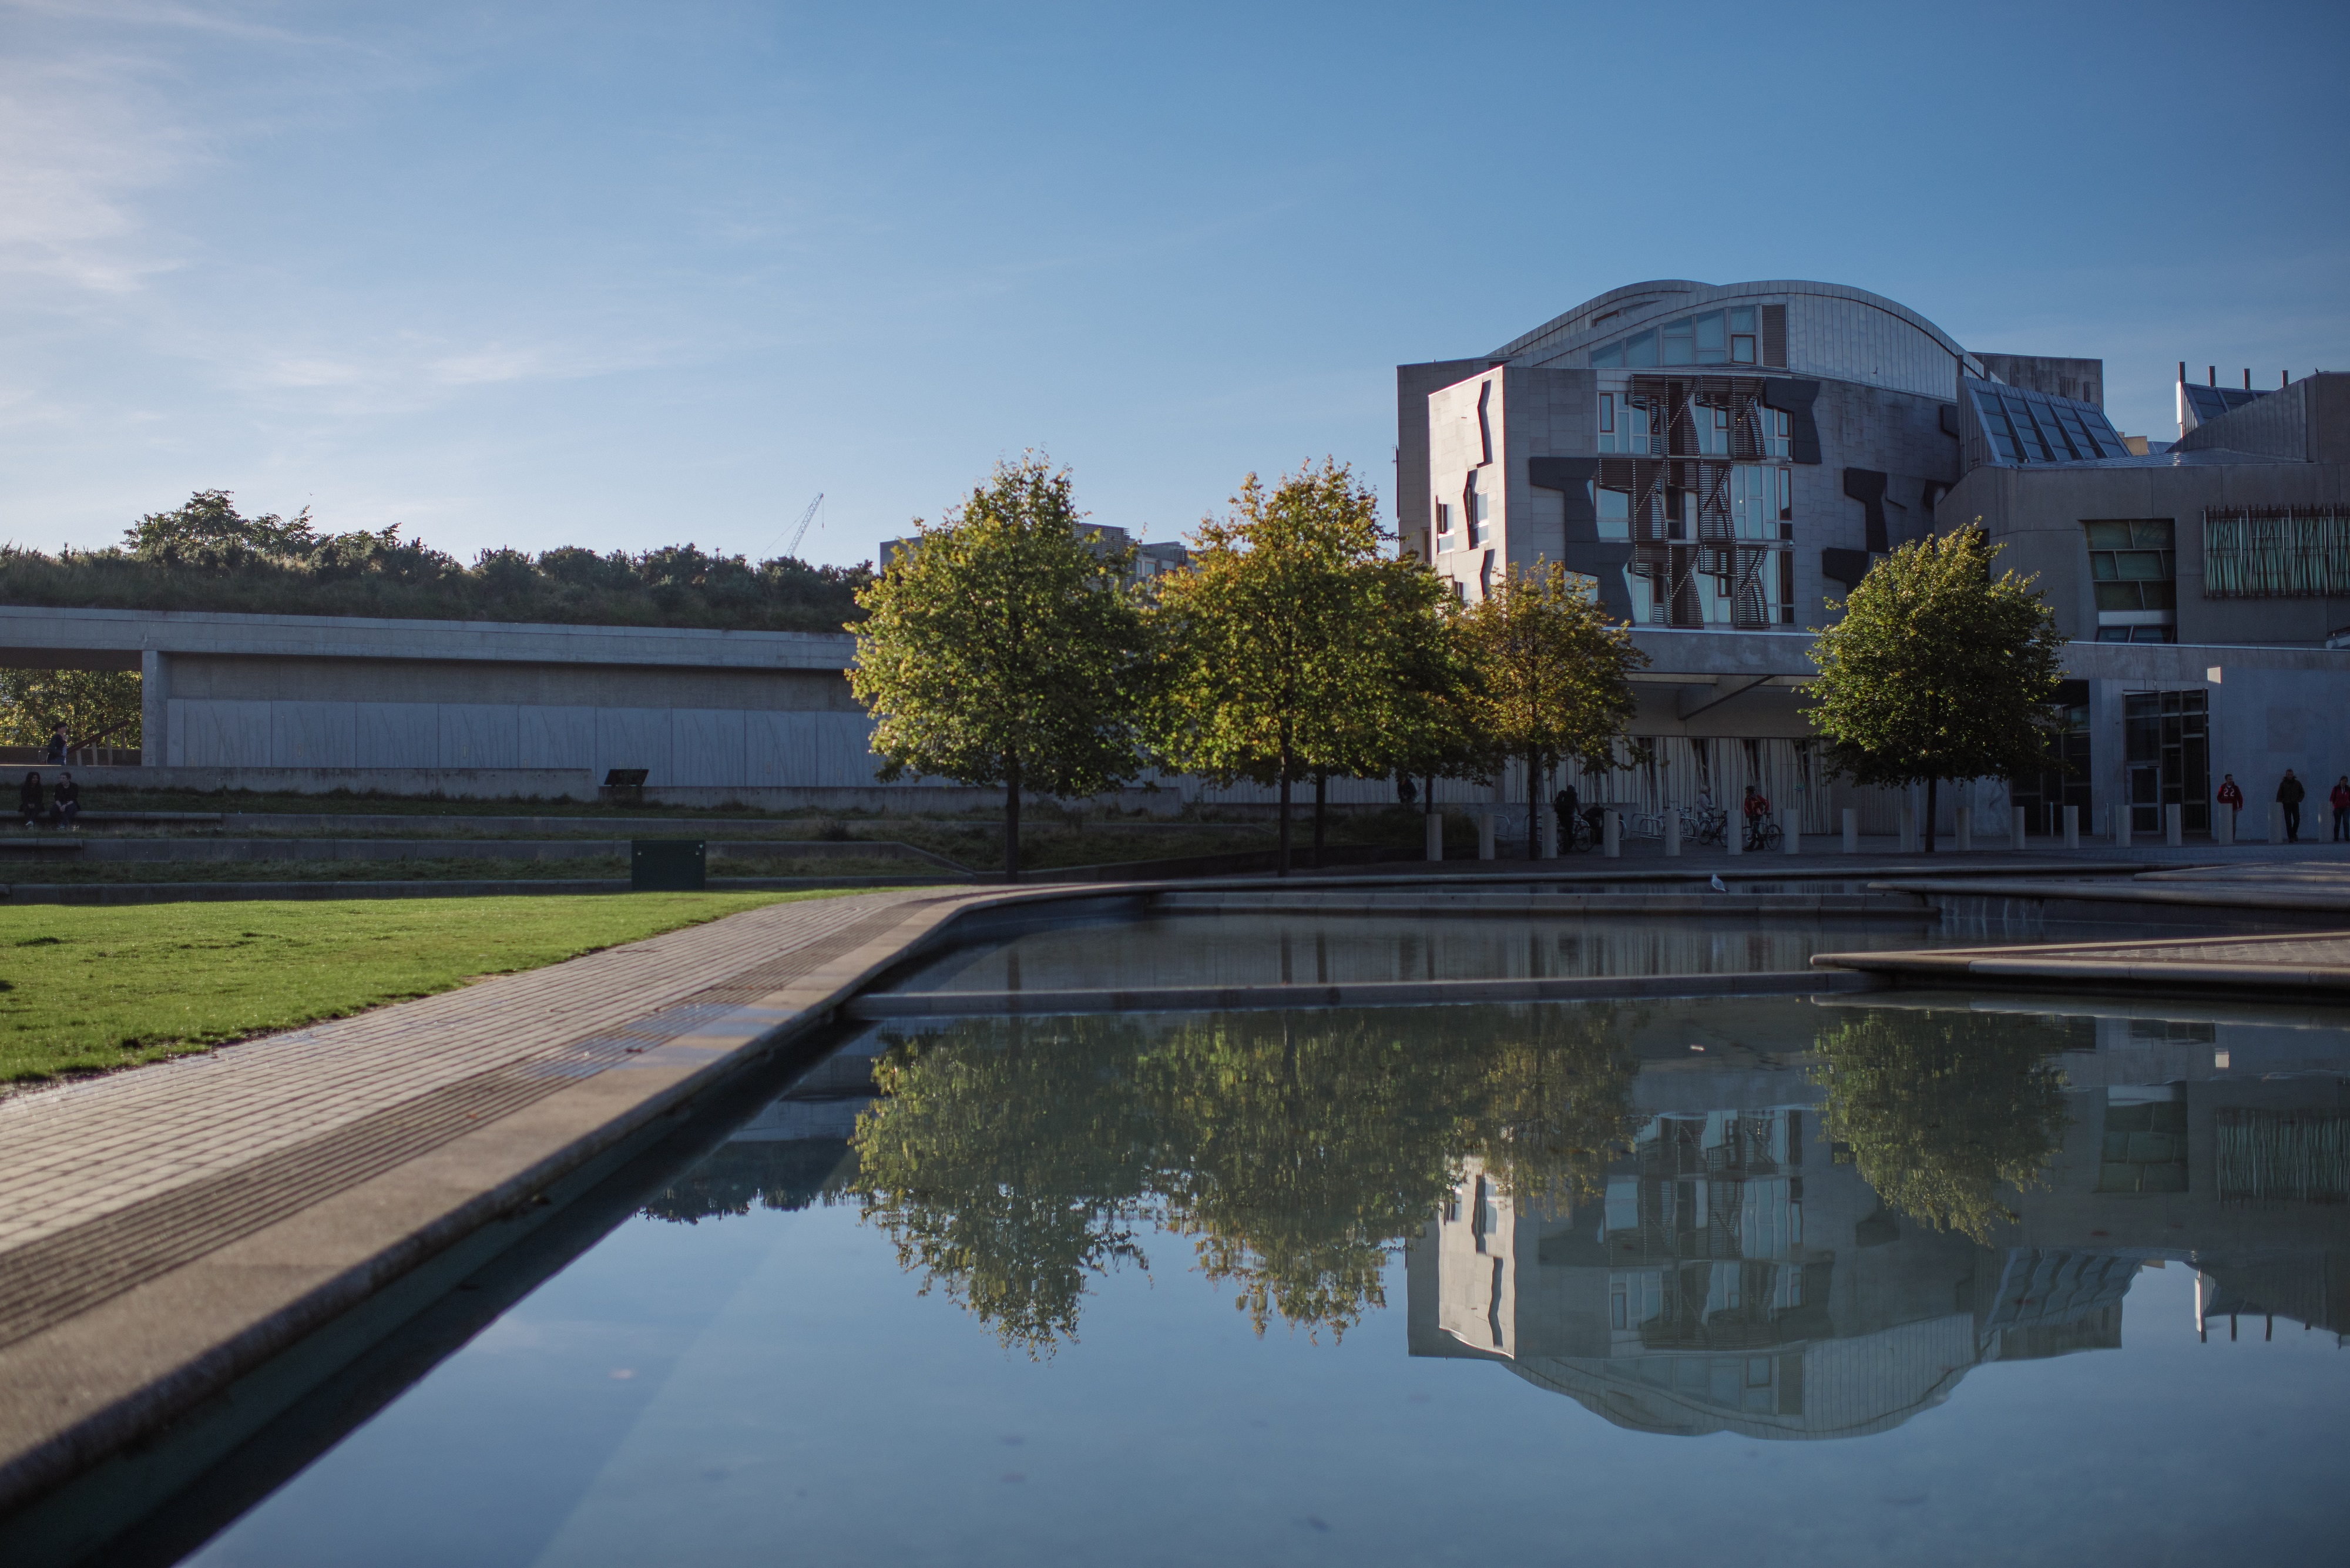 Photo of the outside of the Scottish Parliament building